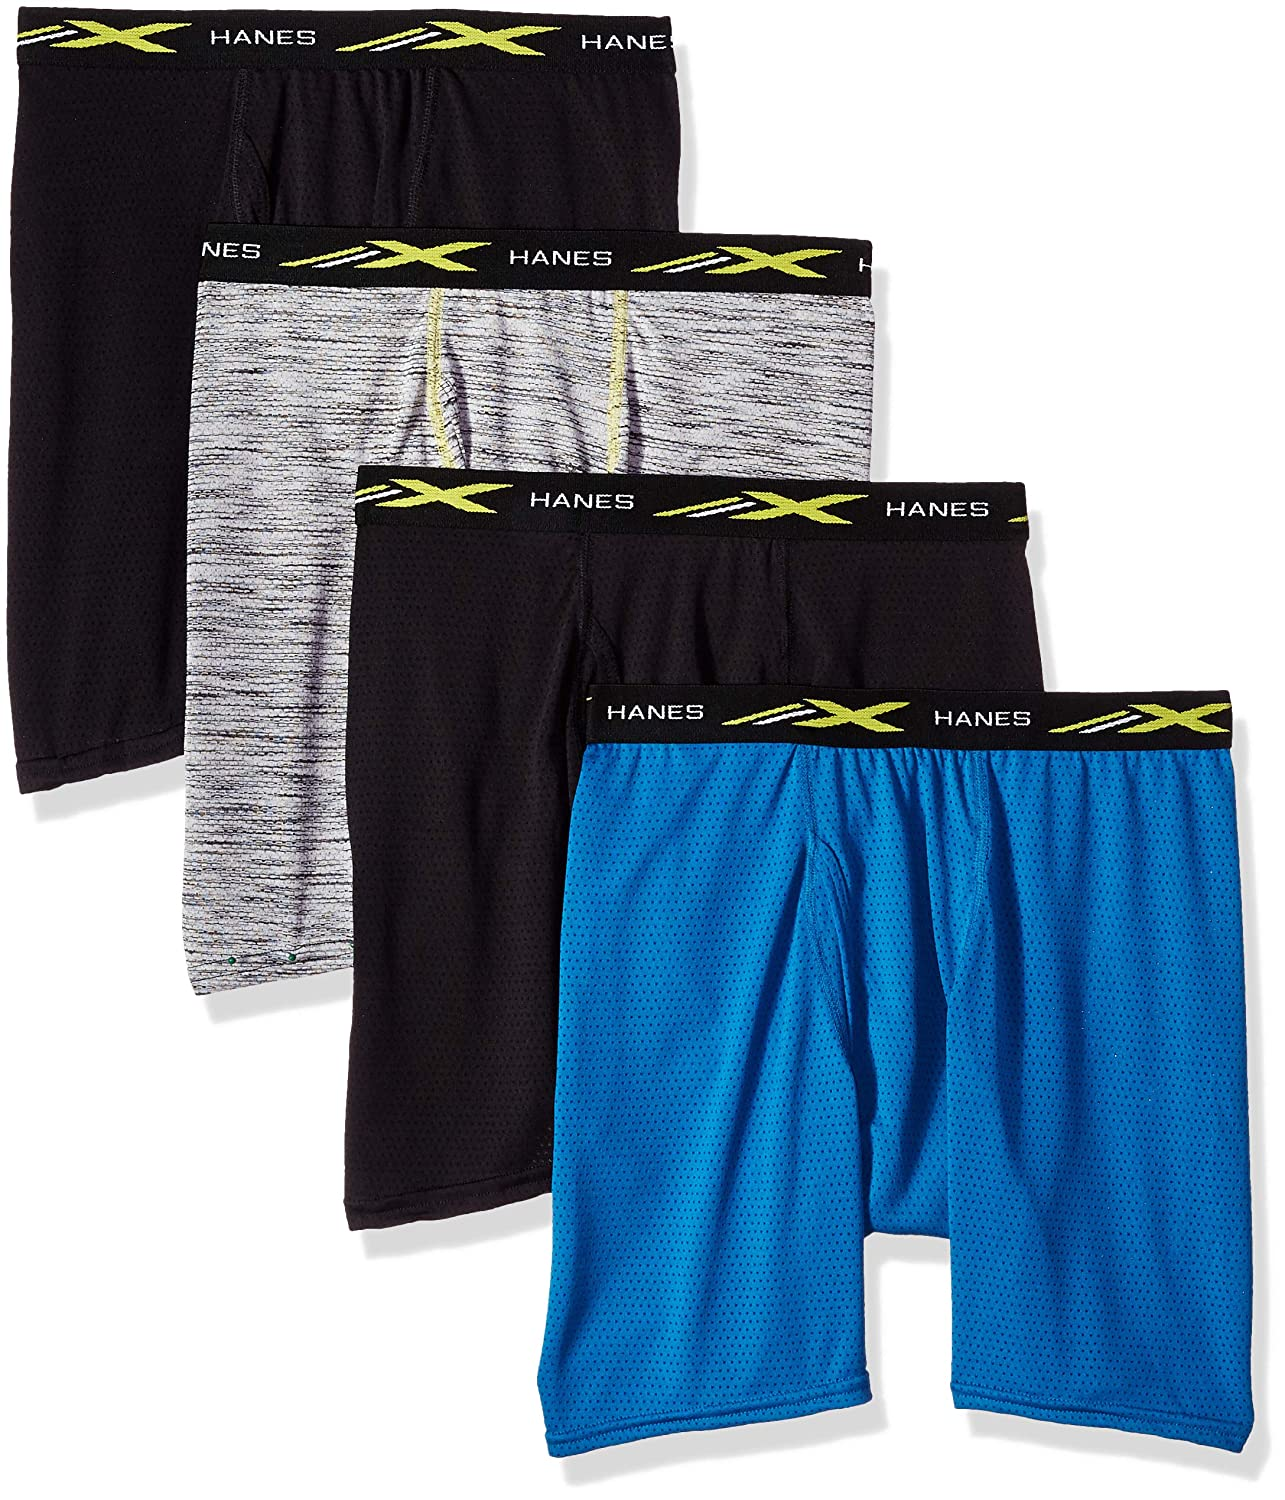 Hanes Men's X-Temp Lightweight Mesh Space Dye Boxer Brief 4-Pack, assorted, colors mat vary